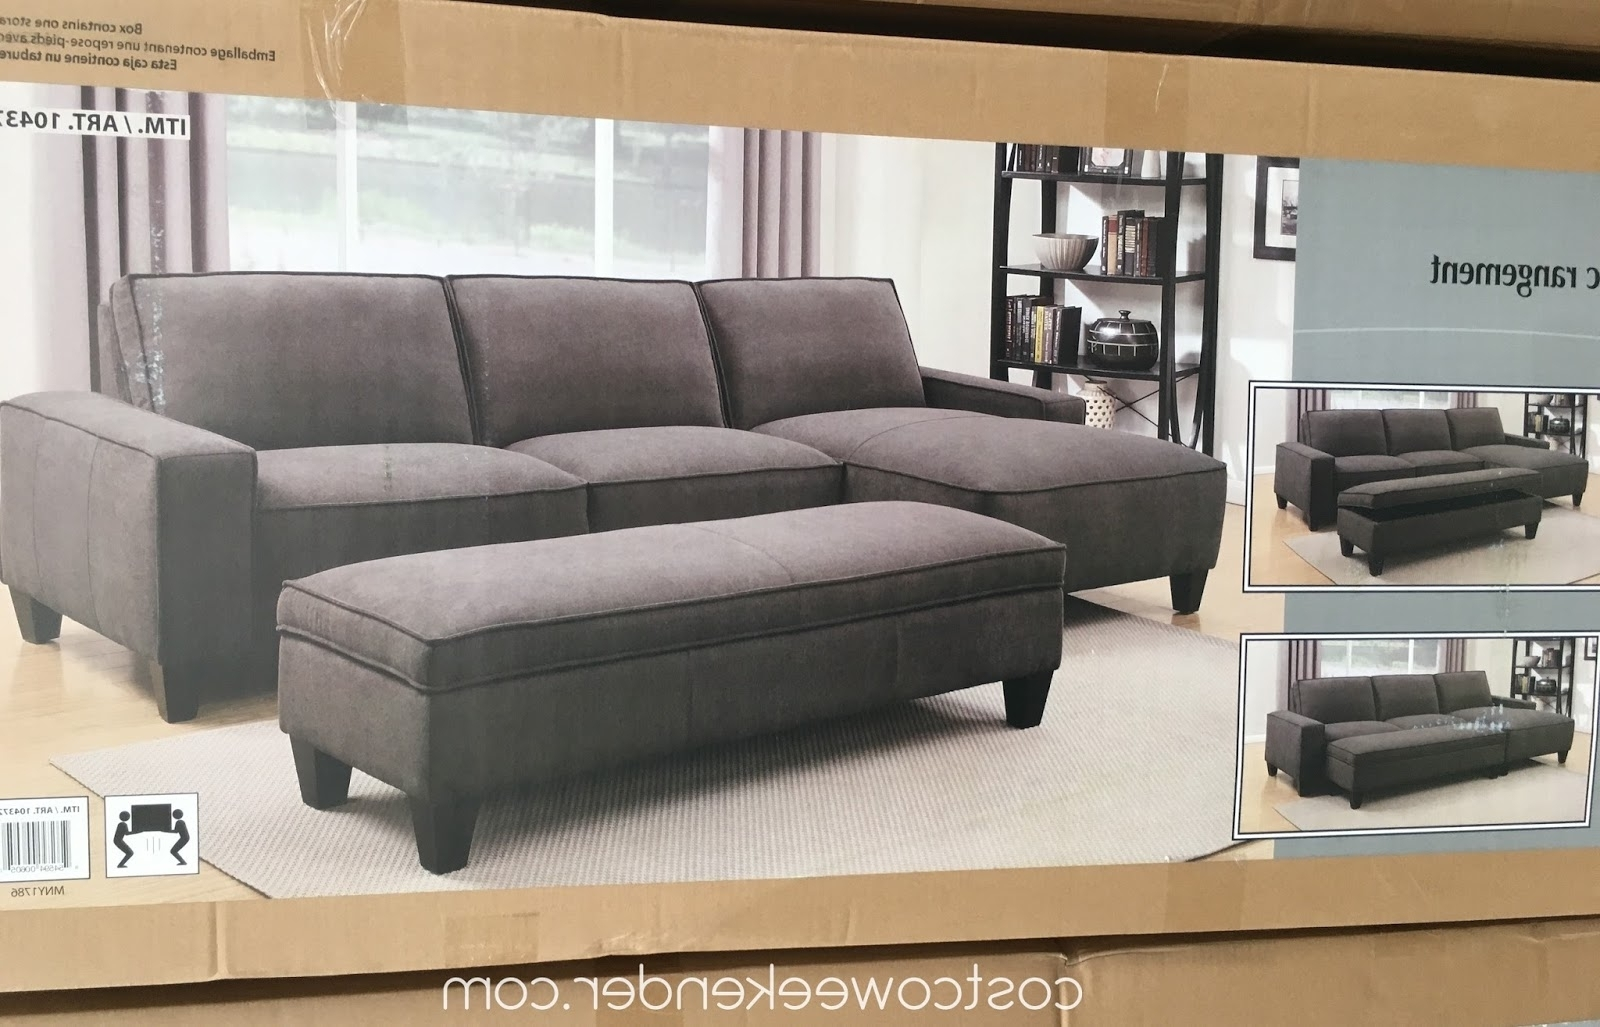 Trendy Lively Chaise Sofa With Storage Ottoman – Best Sectional Sofa Ideas For Sectional Sofas With Chaise And Ottoman (View 19 of 20)